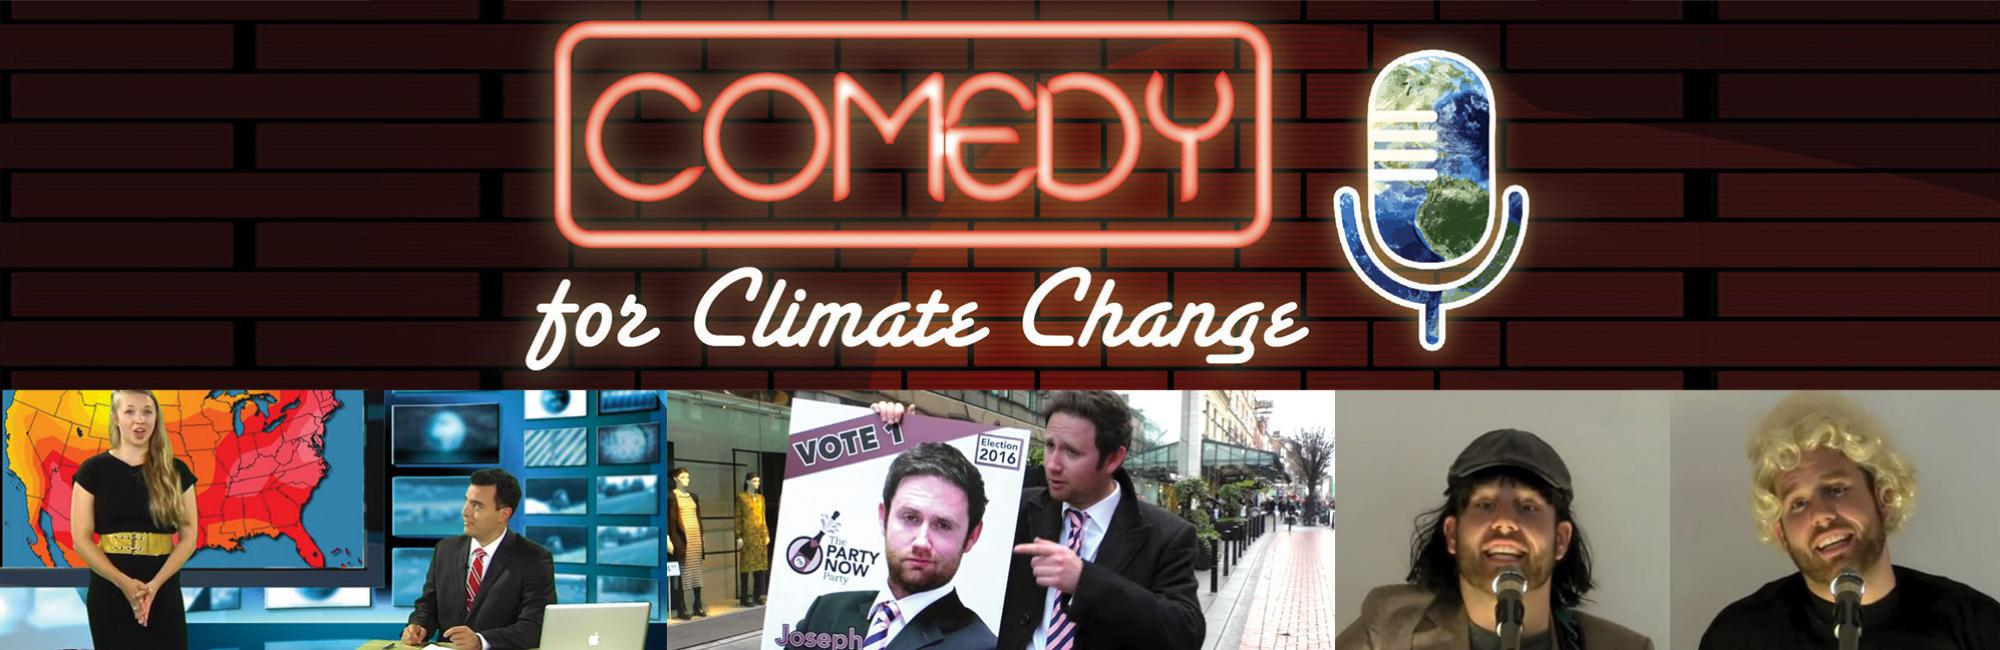 Winners Announced for Inside the Greenhouse Comedy & Climate Change Video Competition